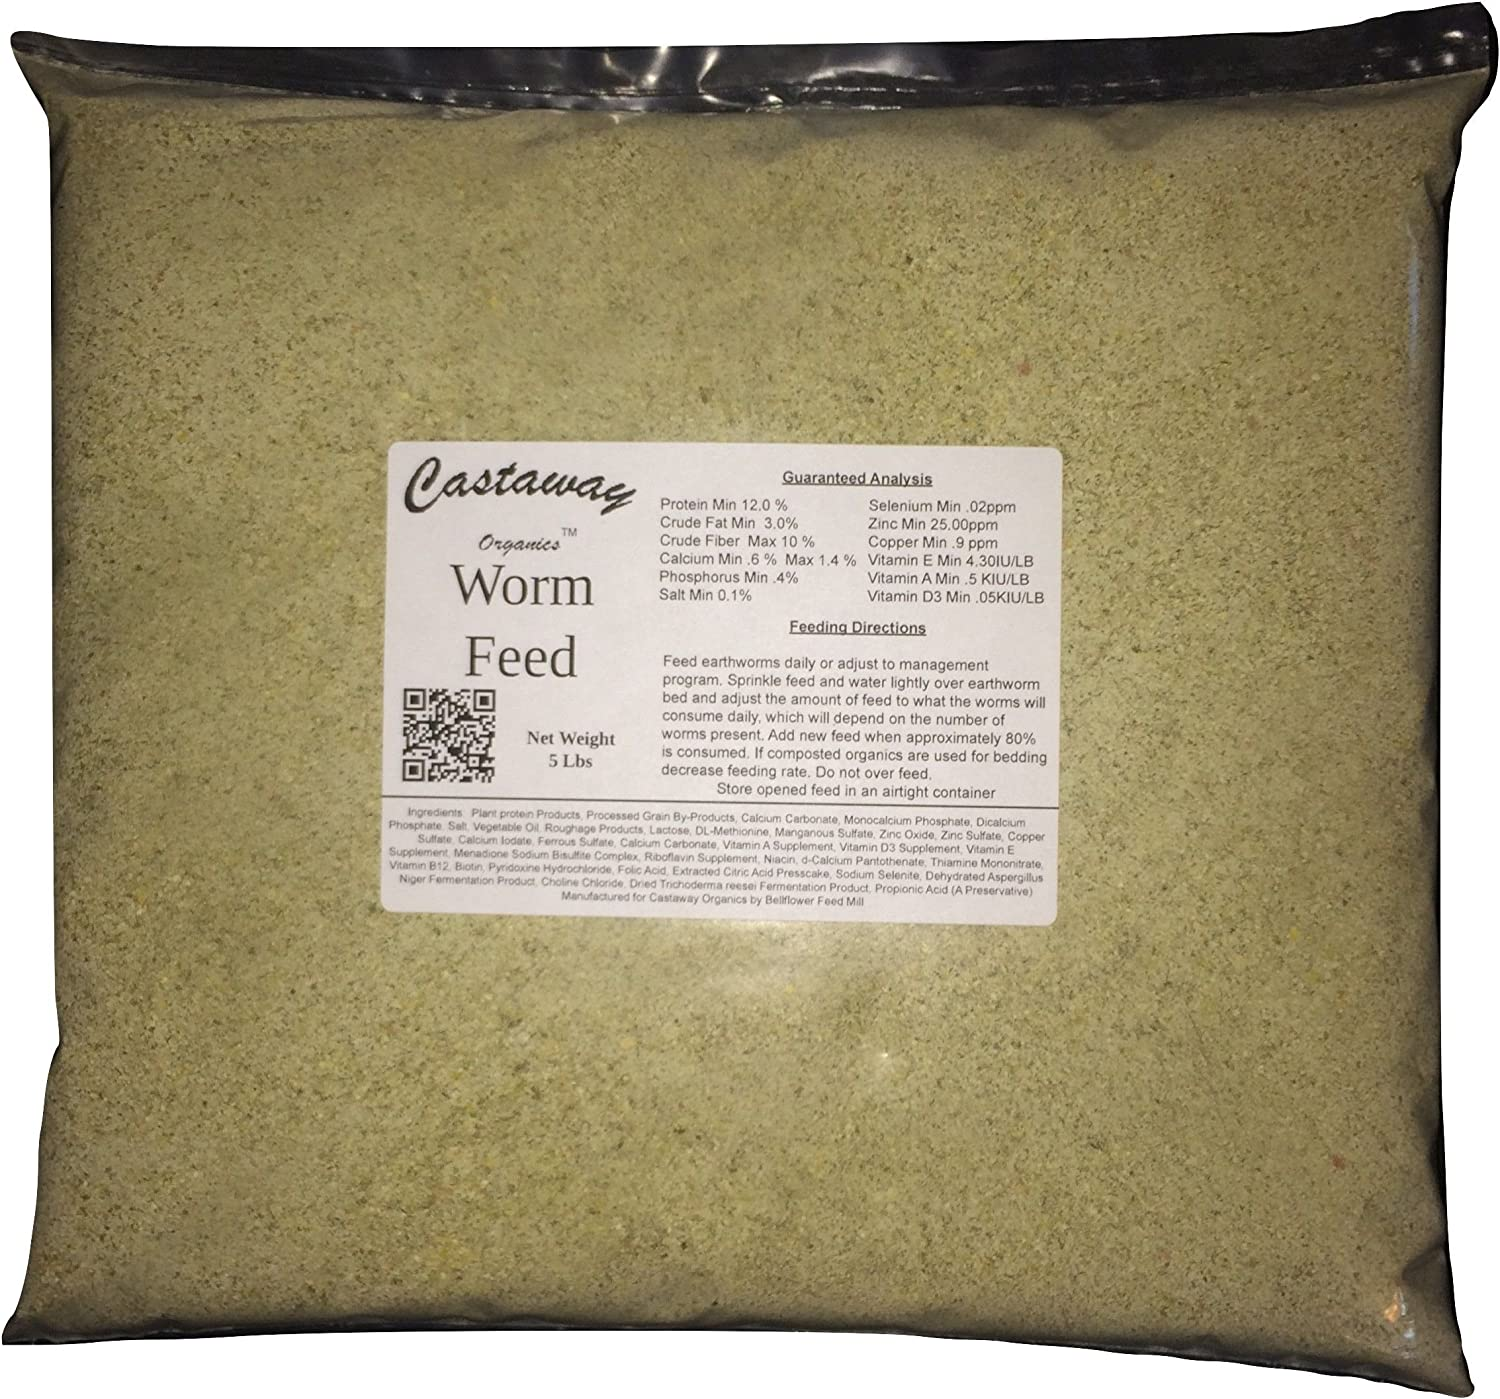 10LB Mealworm Superworm Food And Bedding CHEAPEST ON Wheat Bran fast ship